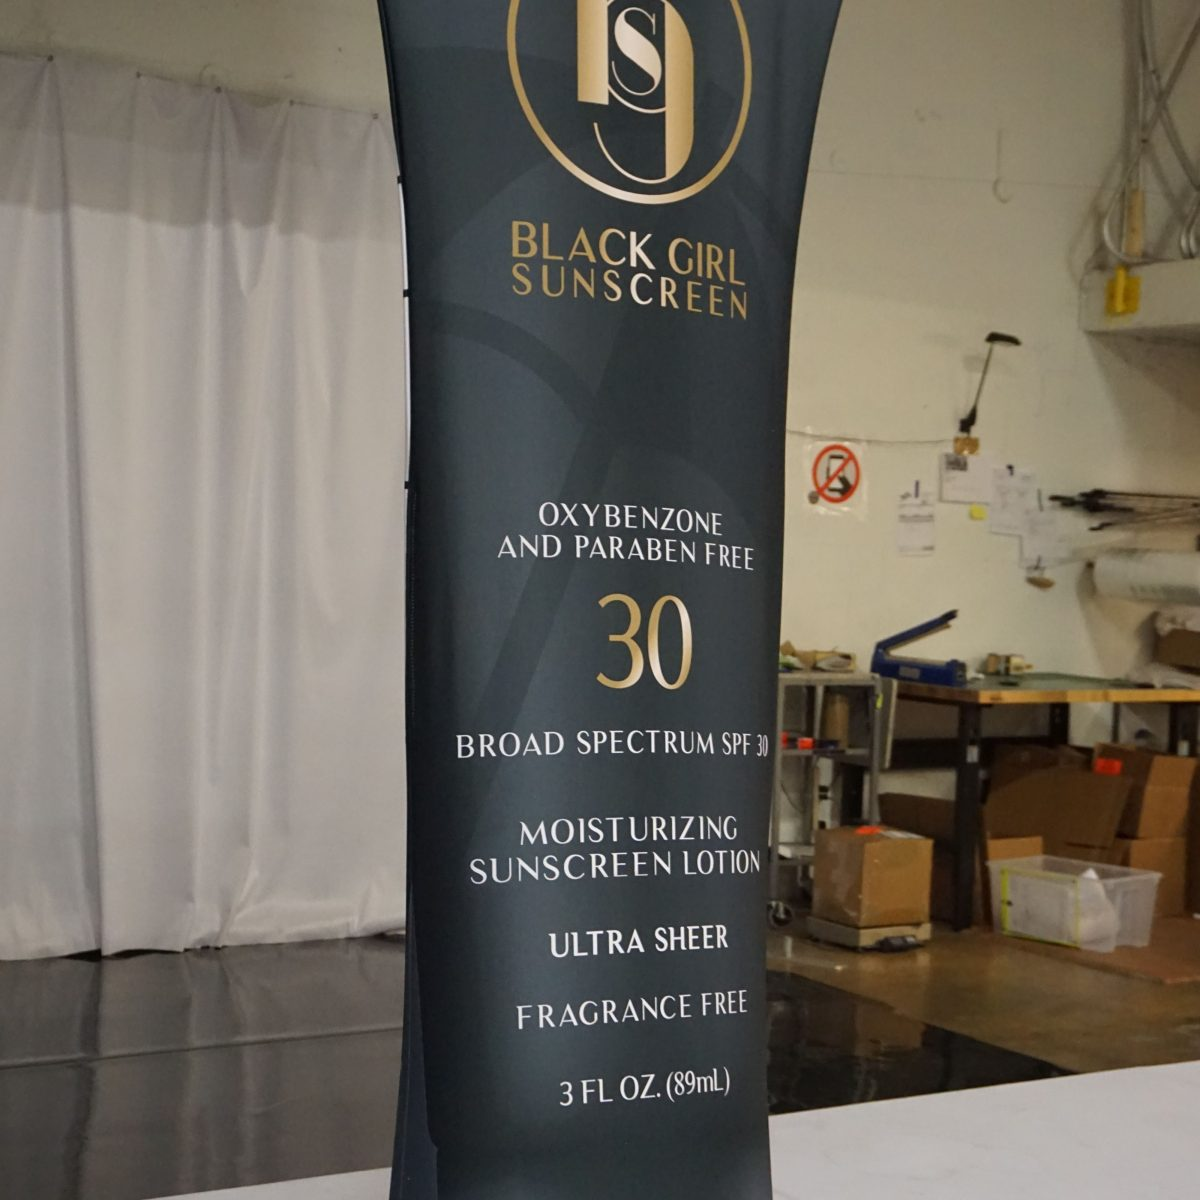 10) Black Girl Sunscreen Tension Fabric Banner Stand - 2